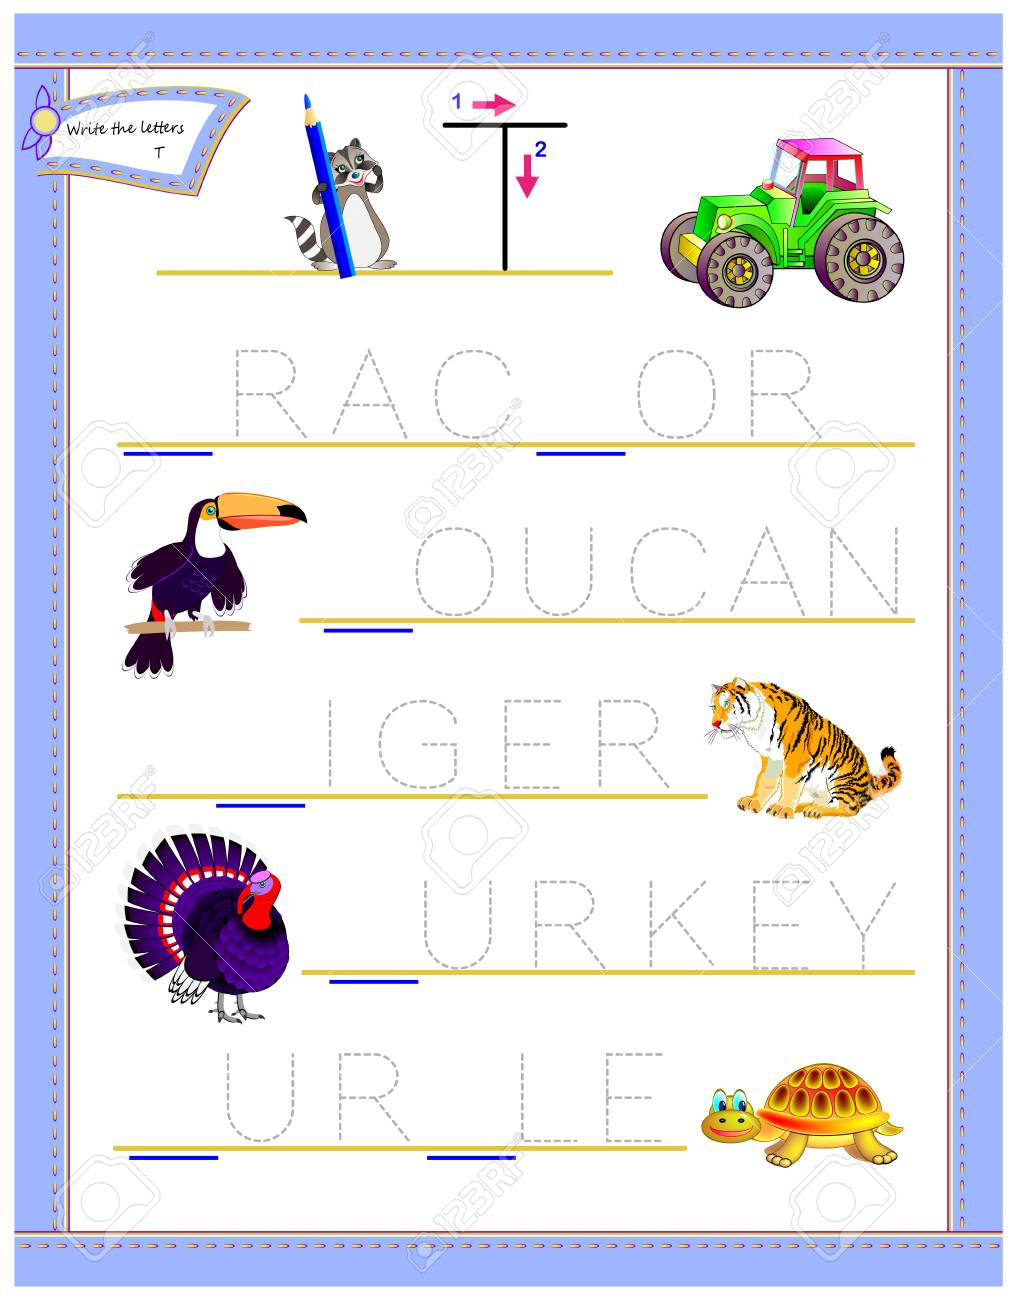 Tracing Letter T For Study English Alphabet. Printable Worksheet..